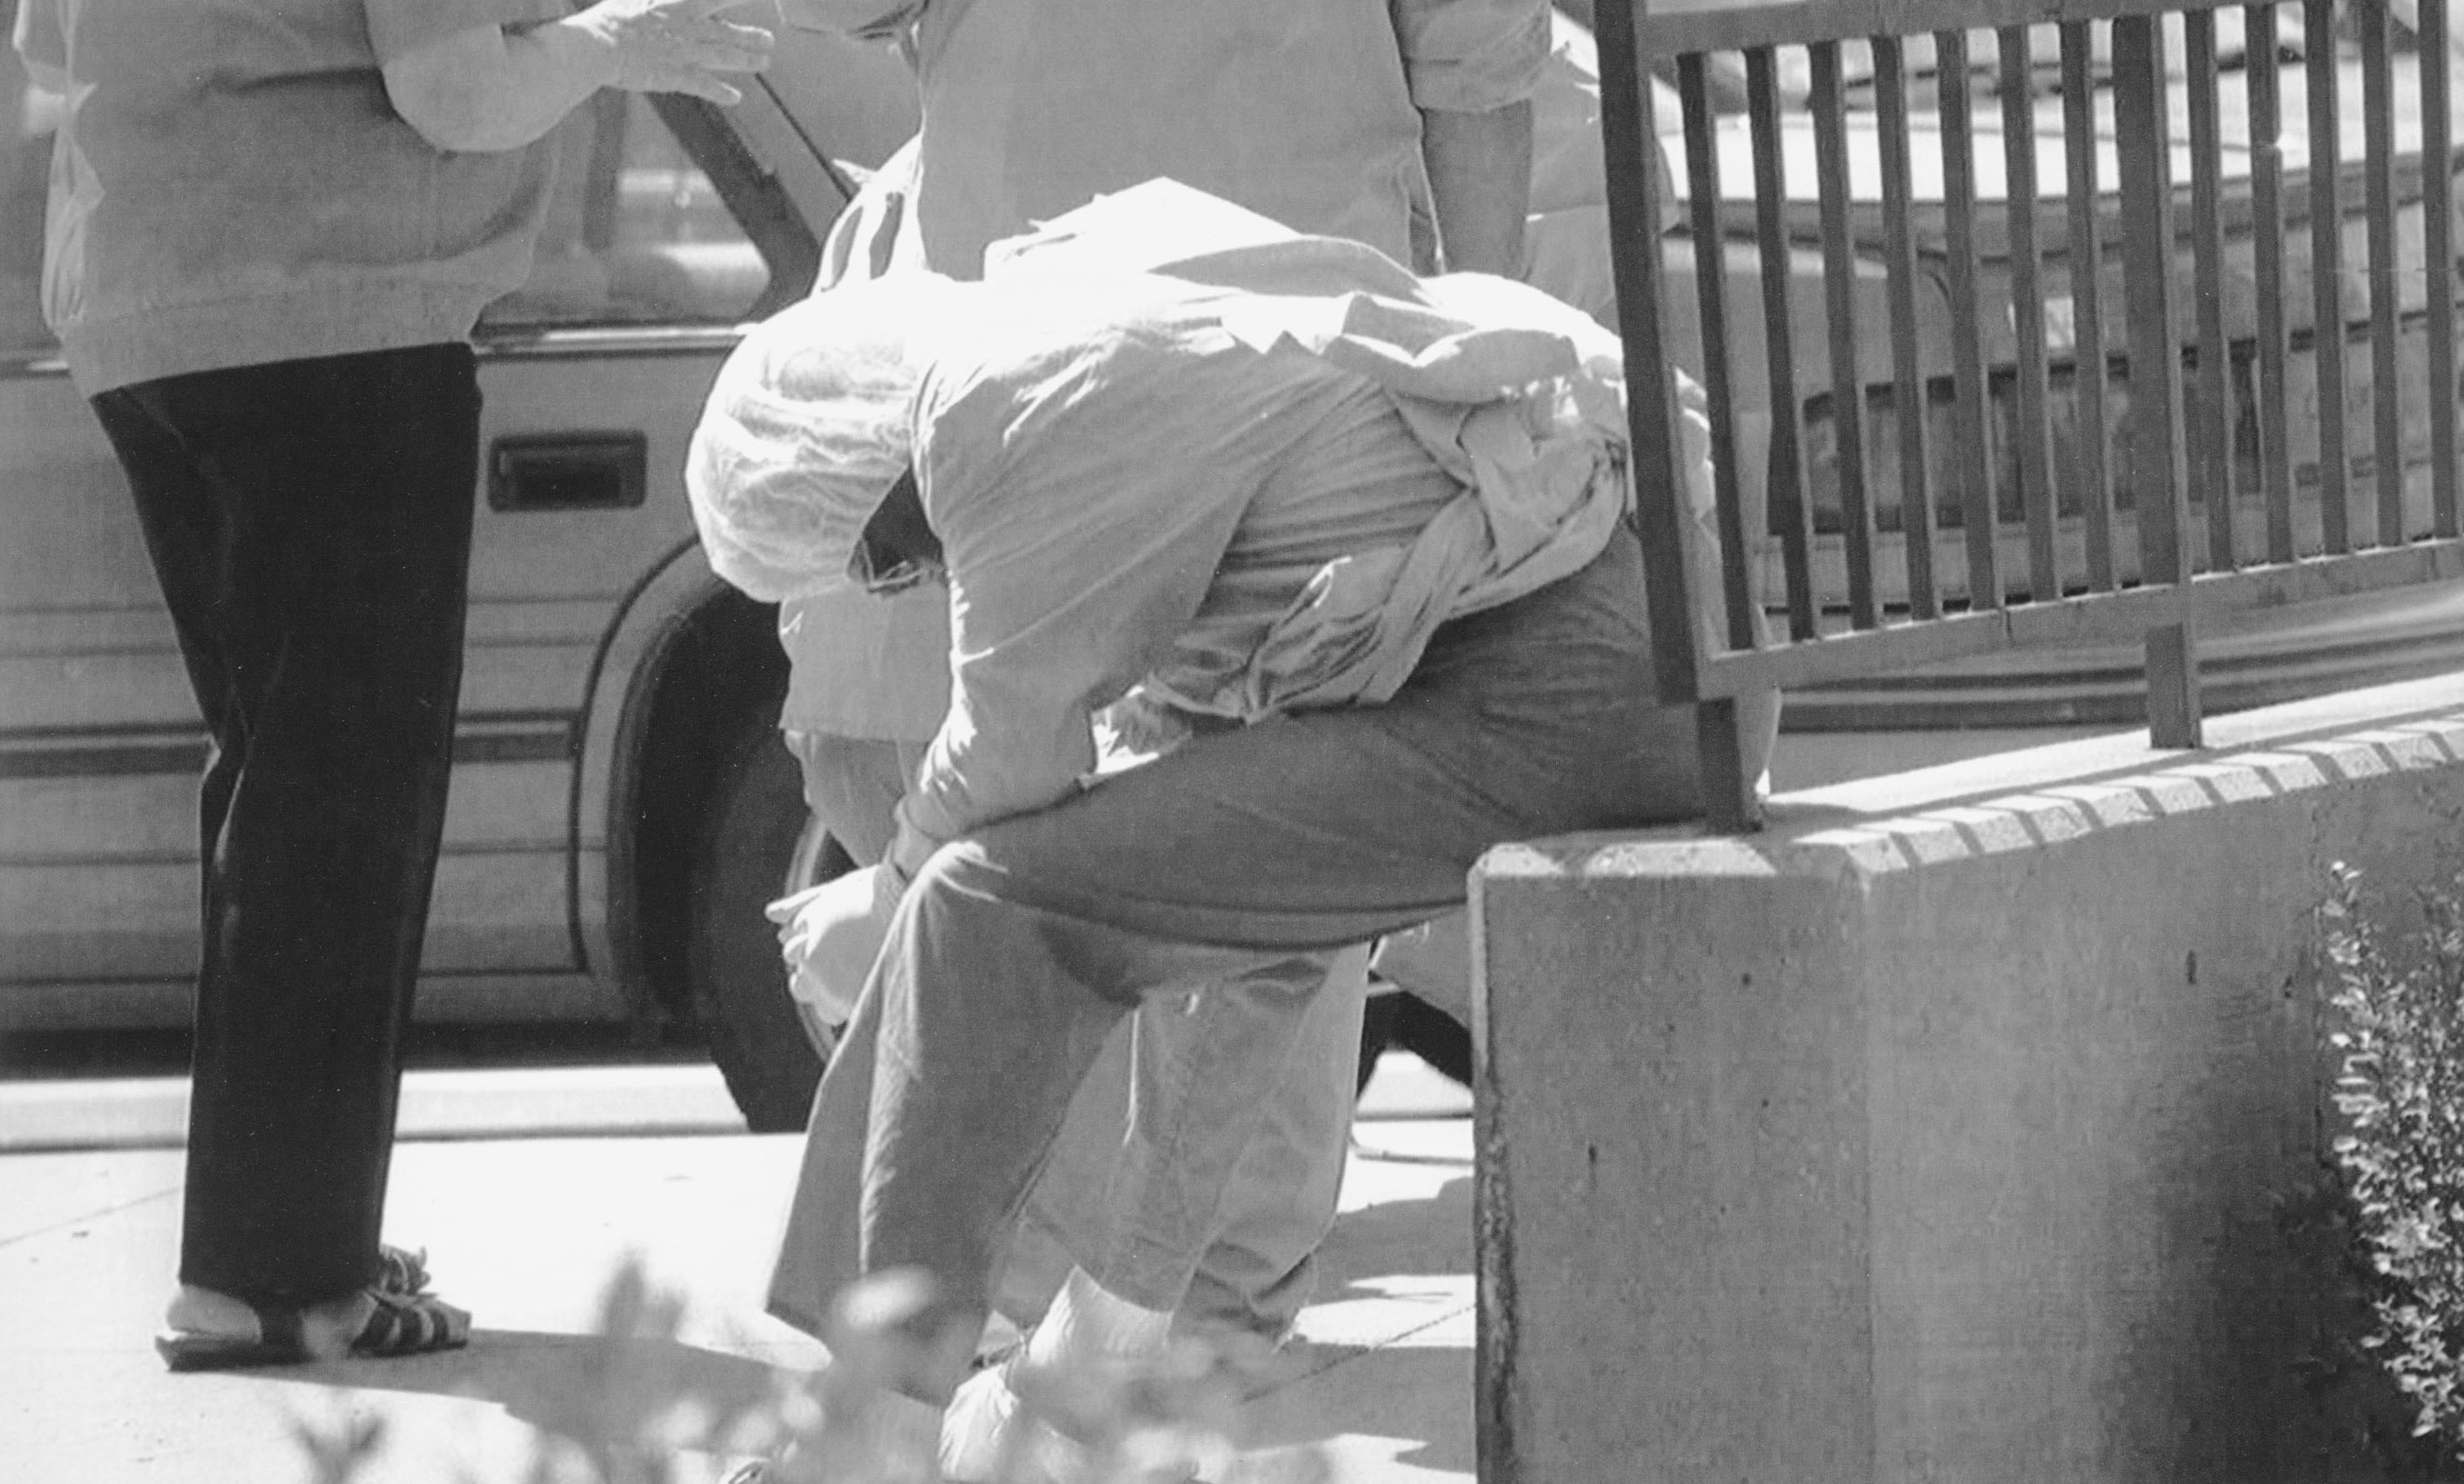 A worker rests after bringing bodies into the Cook County Medical Examiner's Office during the 1995 Chicago heat wave.